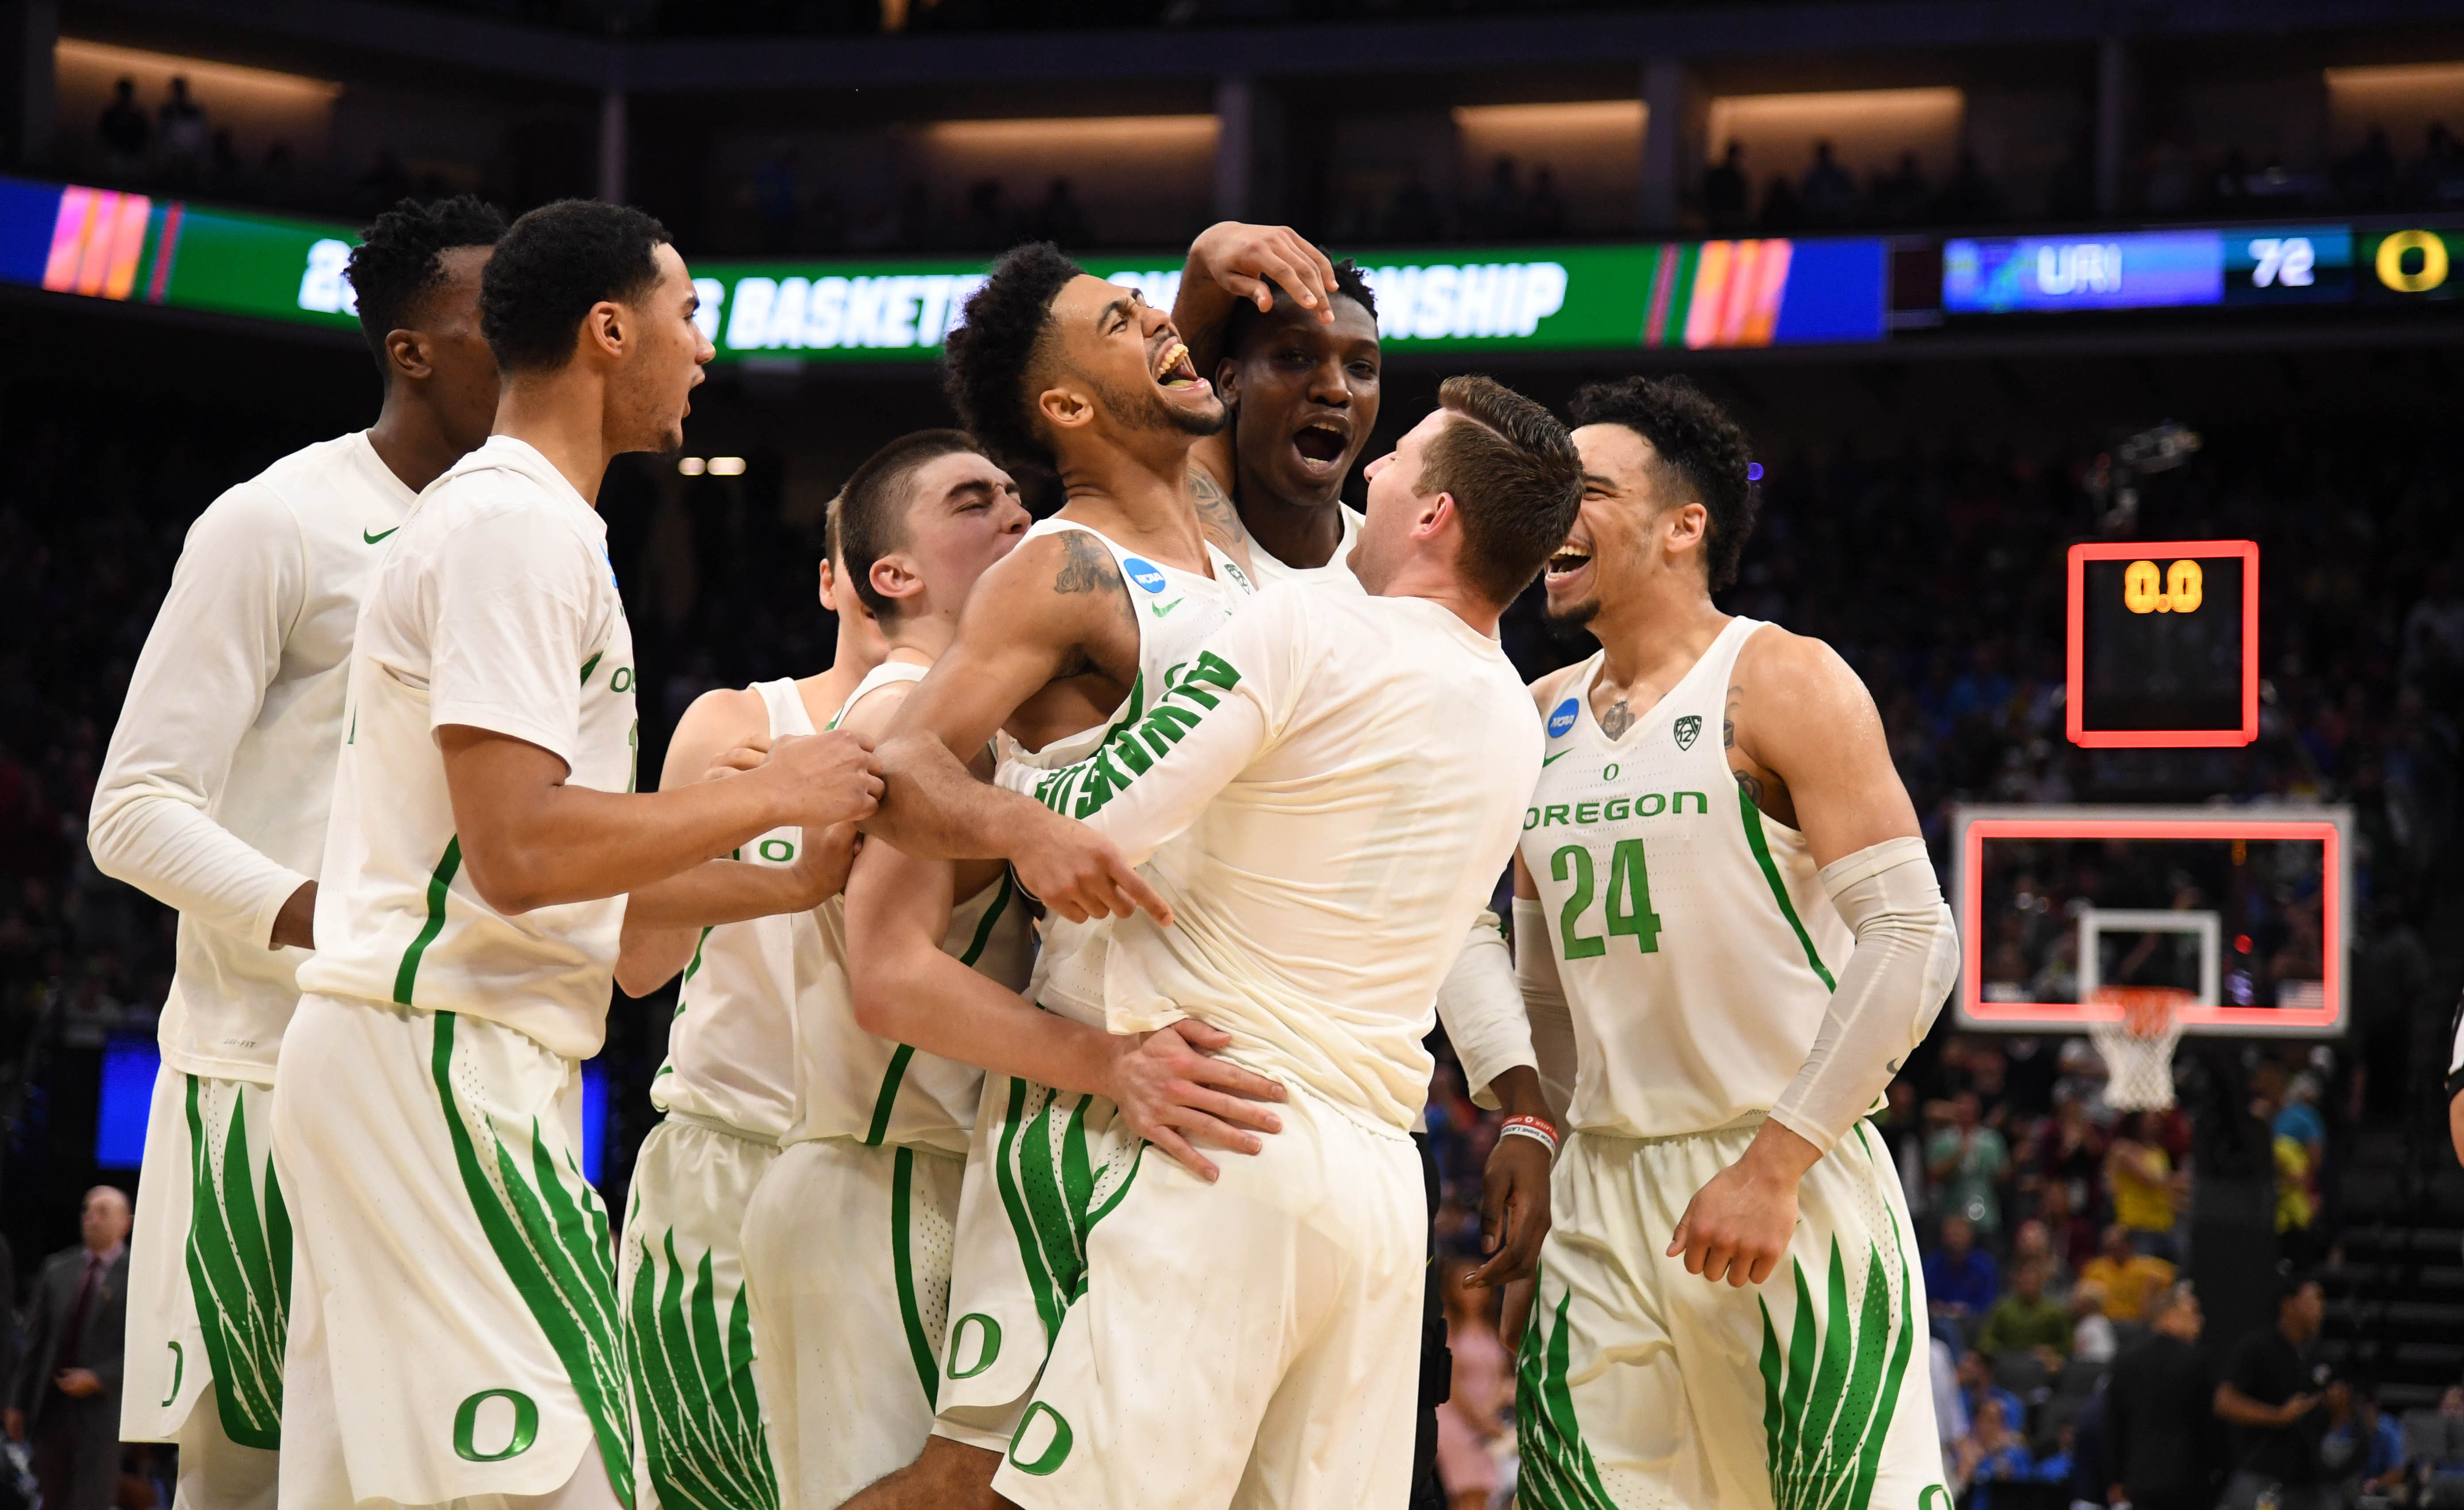 9959169-ncaa-basketball-ncaa-tournament-rhode-island-vs-oregon-2